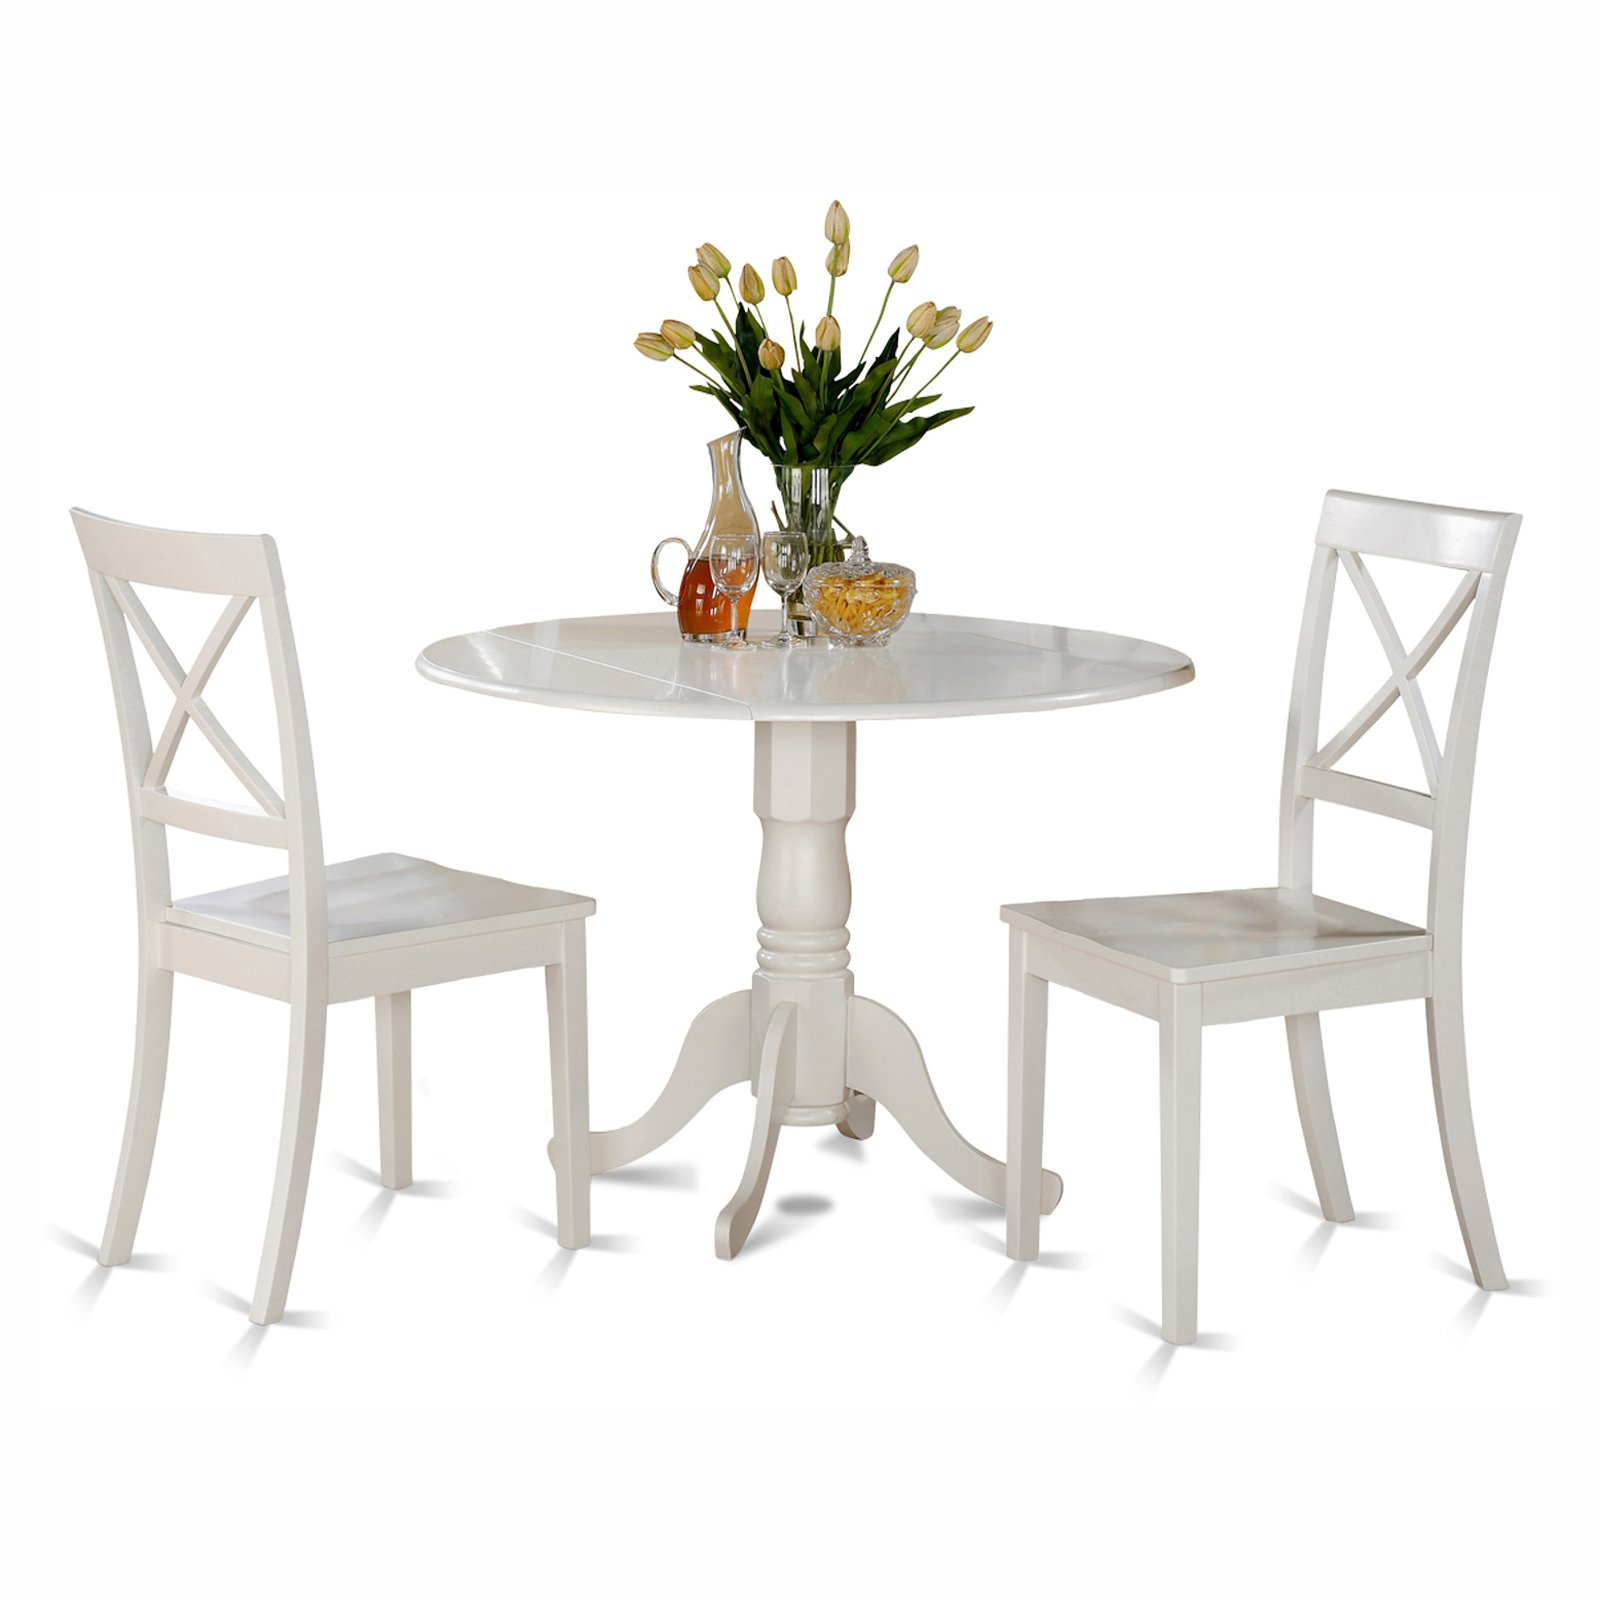 East West Furniture Dublin 3 Piece Drop Leaf Dining Table Set with Boston Wooden Seat Chairs